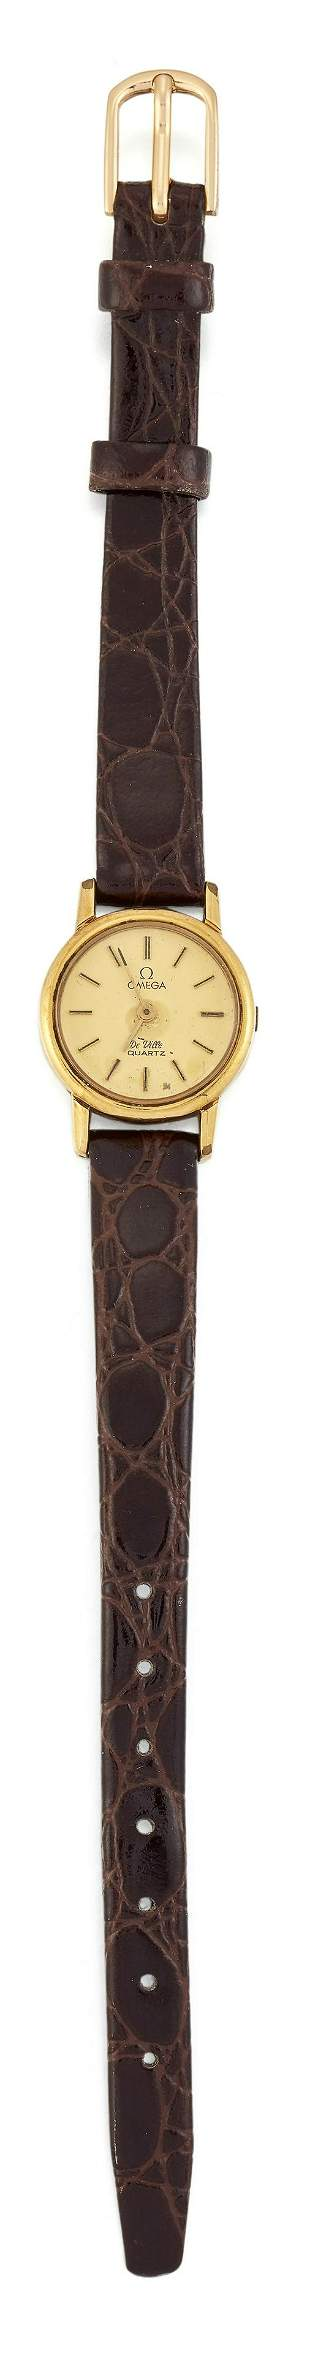 A LADY'S GOLD PLATED OMEGA STRAP WATCH, circular